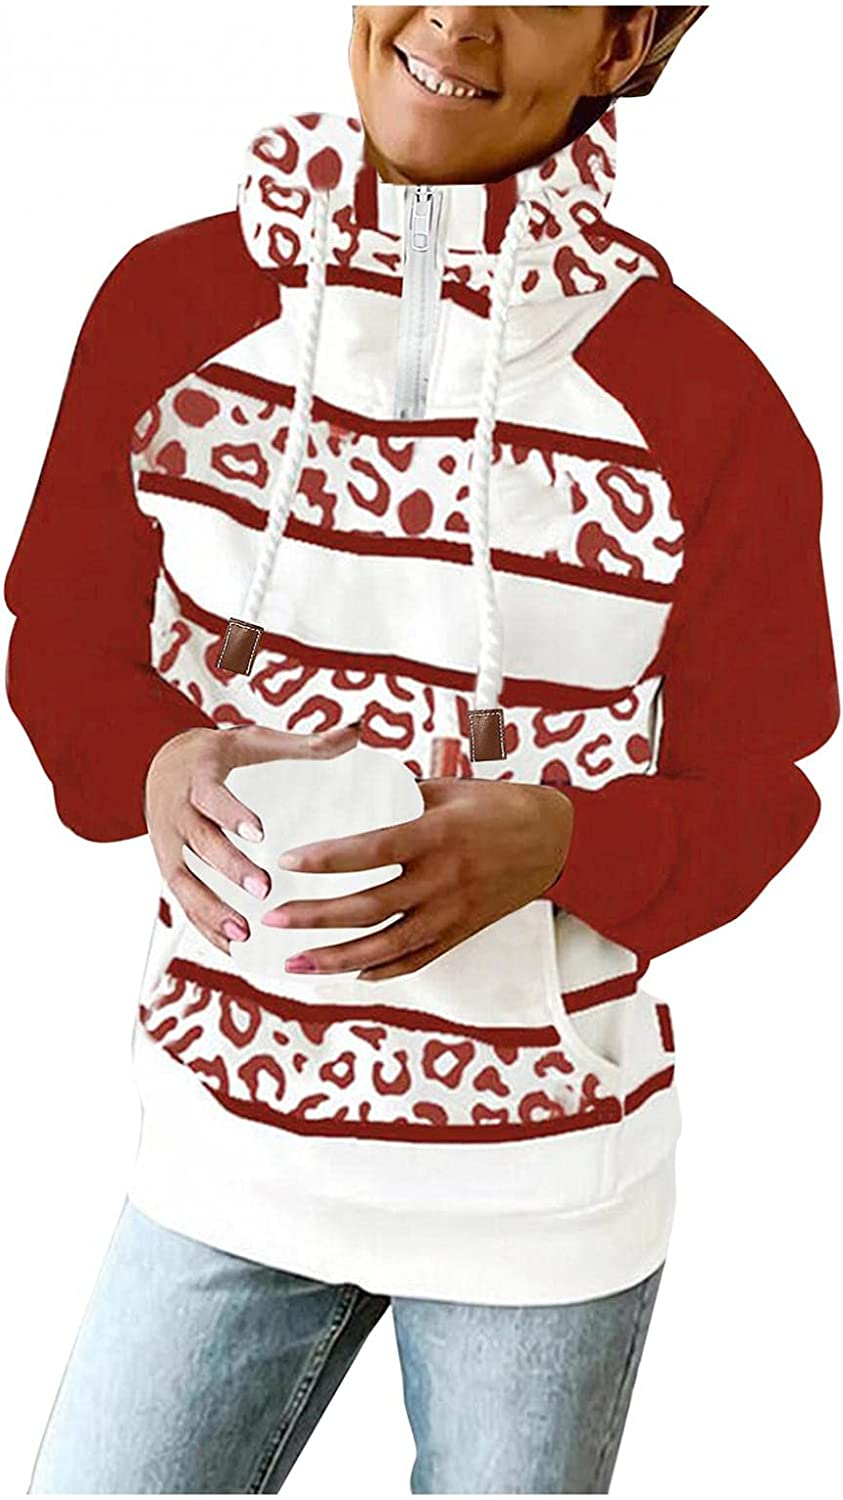 AODONG Hoodies for Women, Womens 1/4 Zip Up Hoodies Stripe Printed Long Sleeve Shirts Pullover Plus Size Fall Tops